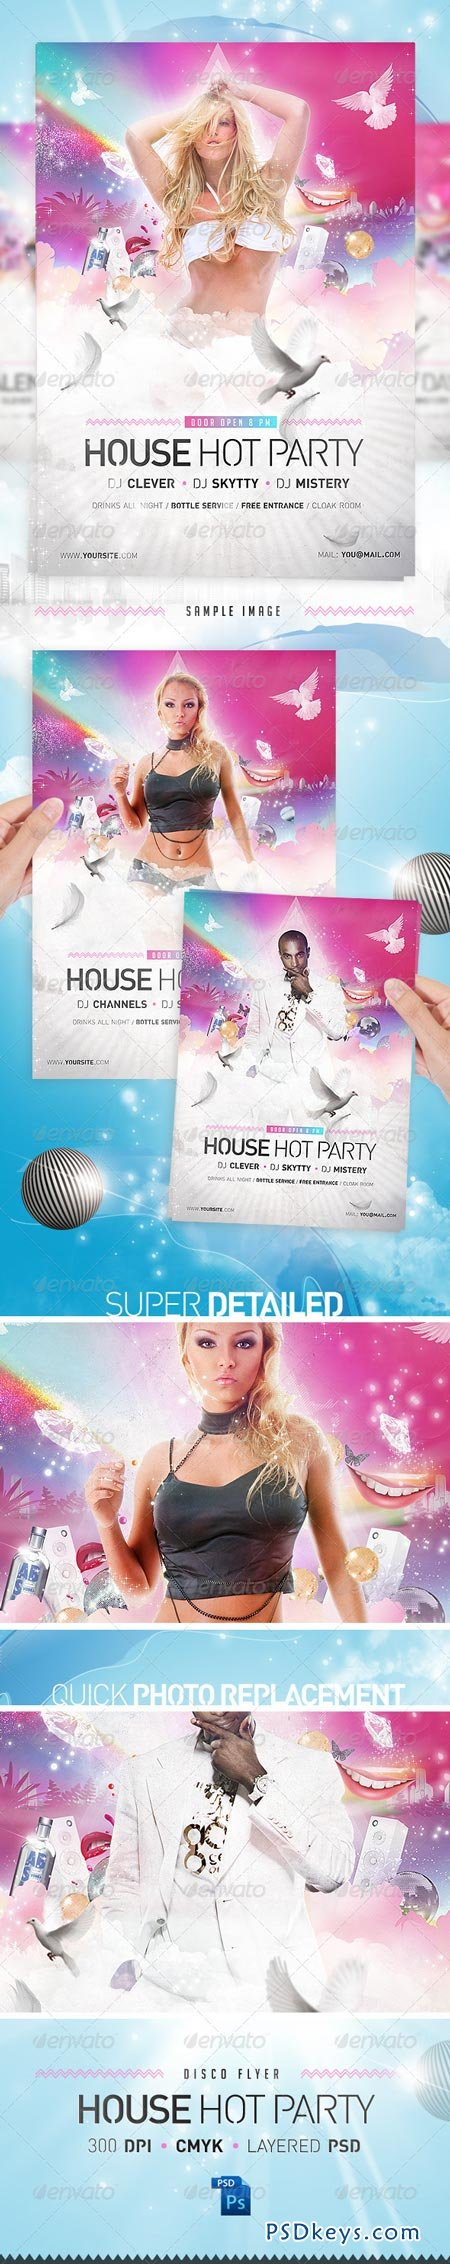 house party disco flyer template photoshop house party disco flyer template 1448512